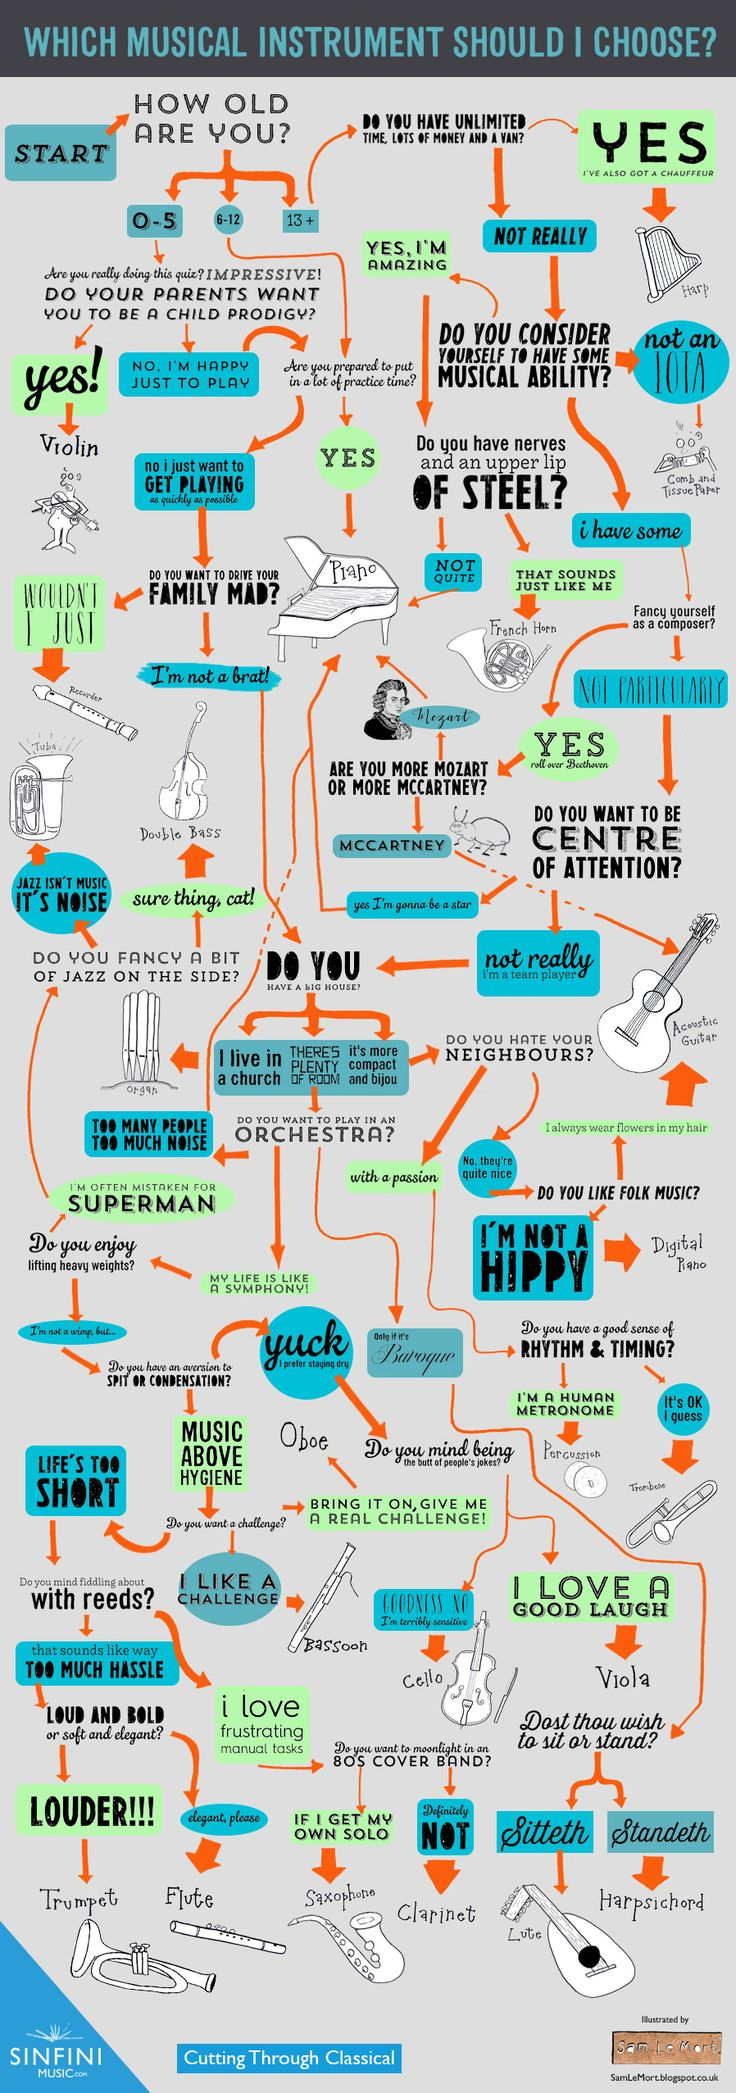 Which Musical Instrument Should I Learn? Follow the Map! - Infographic